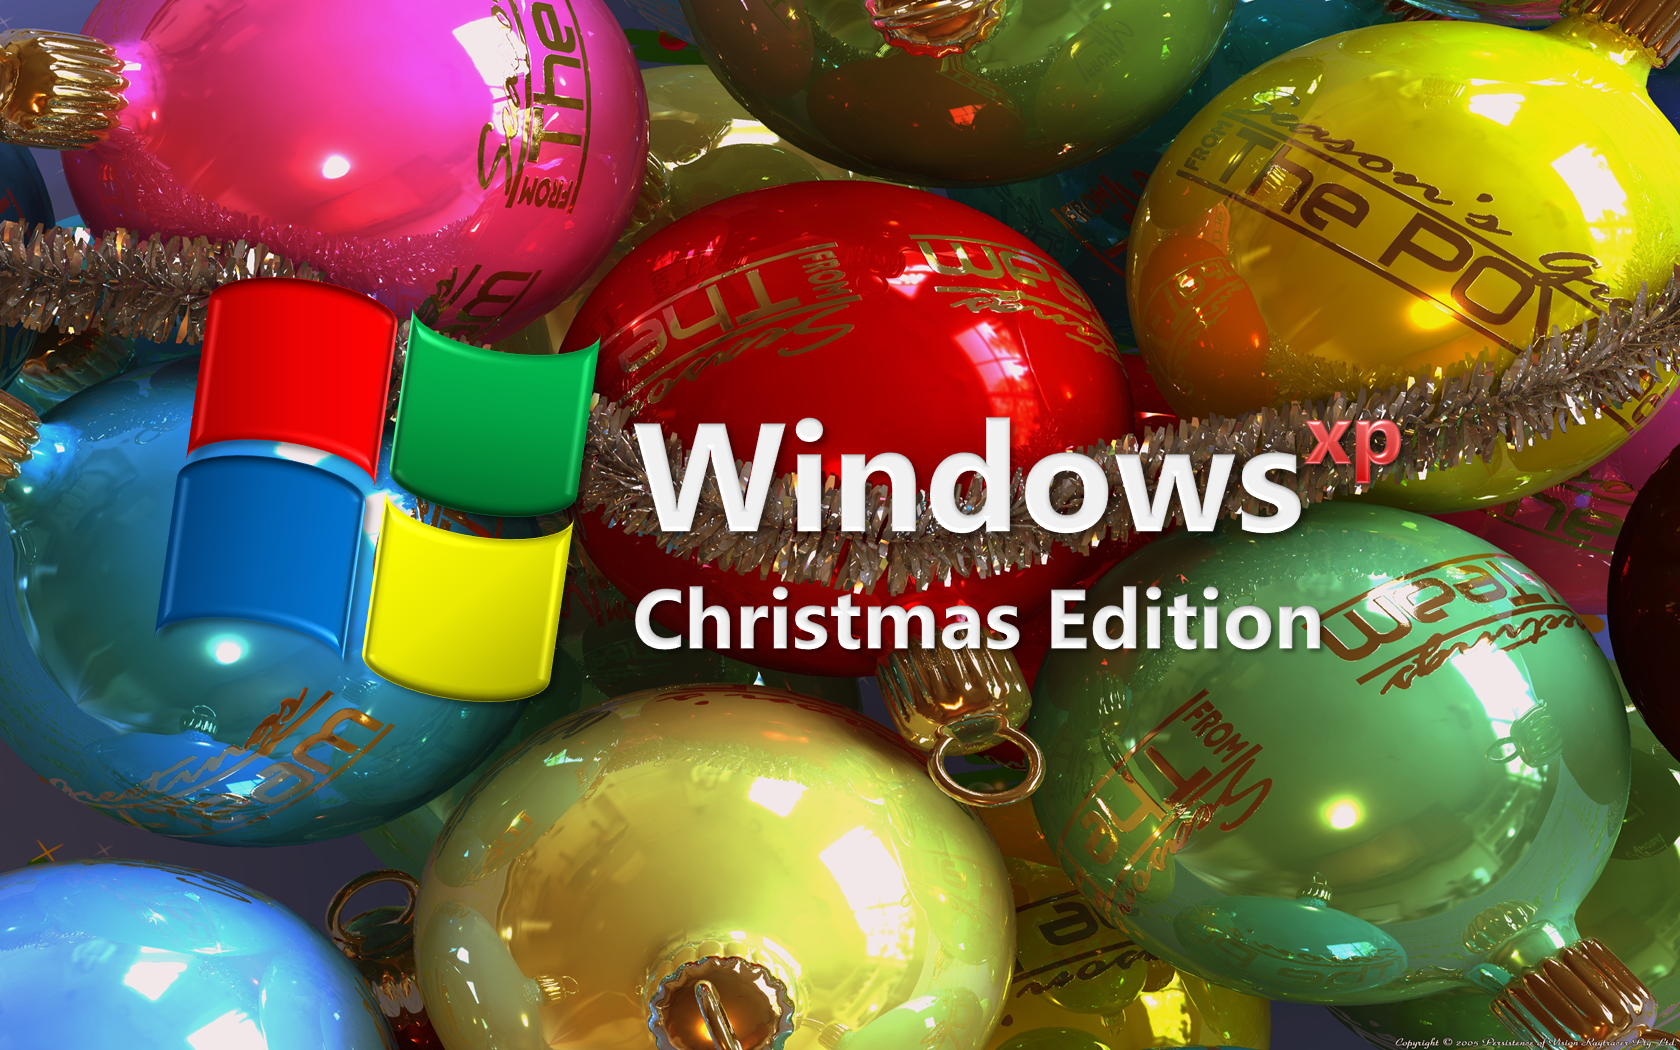 Windows xp christmas edition by aesmon11 on deviantart